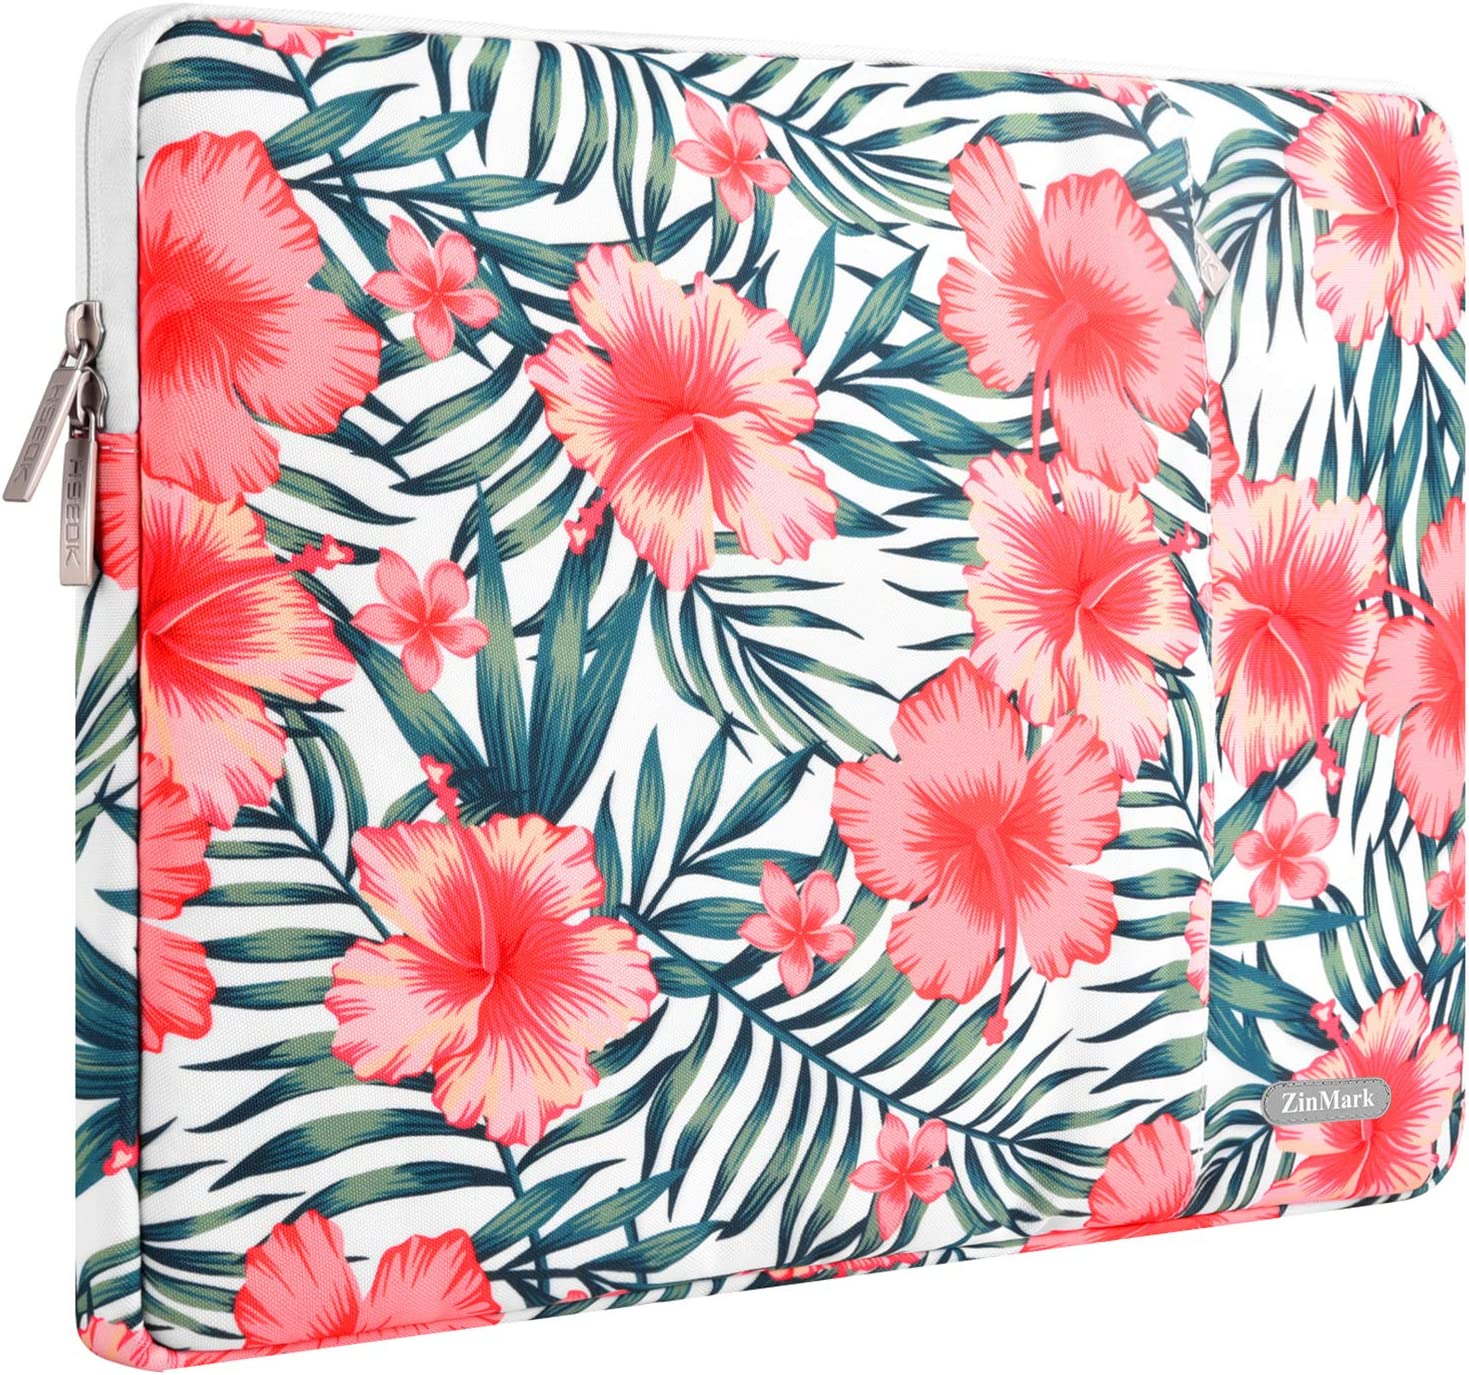 ZinMark Laptop Sleeve 13 Inch Compatible 2019 2018 MacBook Air 13 Inch Retina A1932, 13 Inch MacBook Pro A2159 A1989 A1706 A1708 | XPS 13, Water-Resistant Polyester Notebook Case, Rhododendron